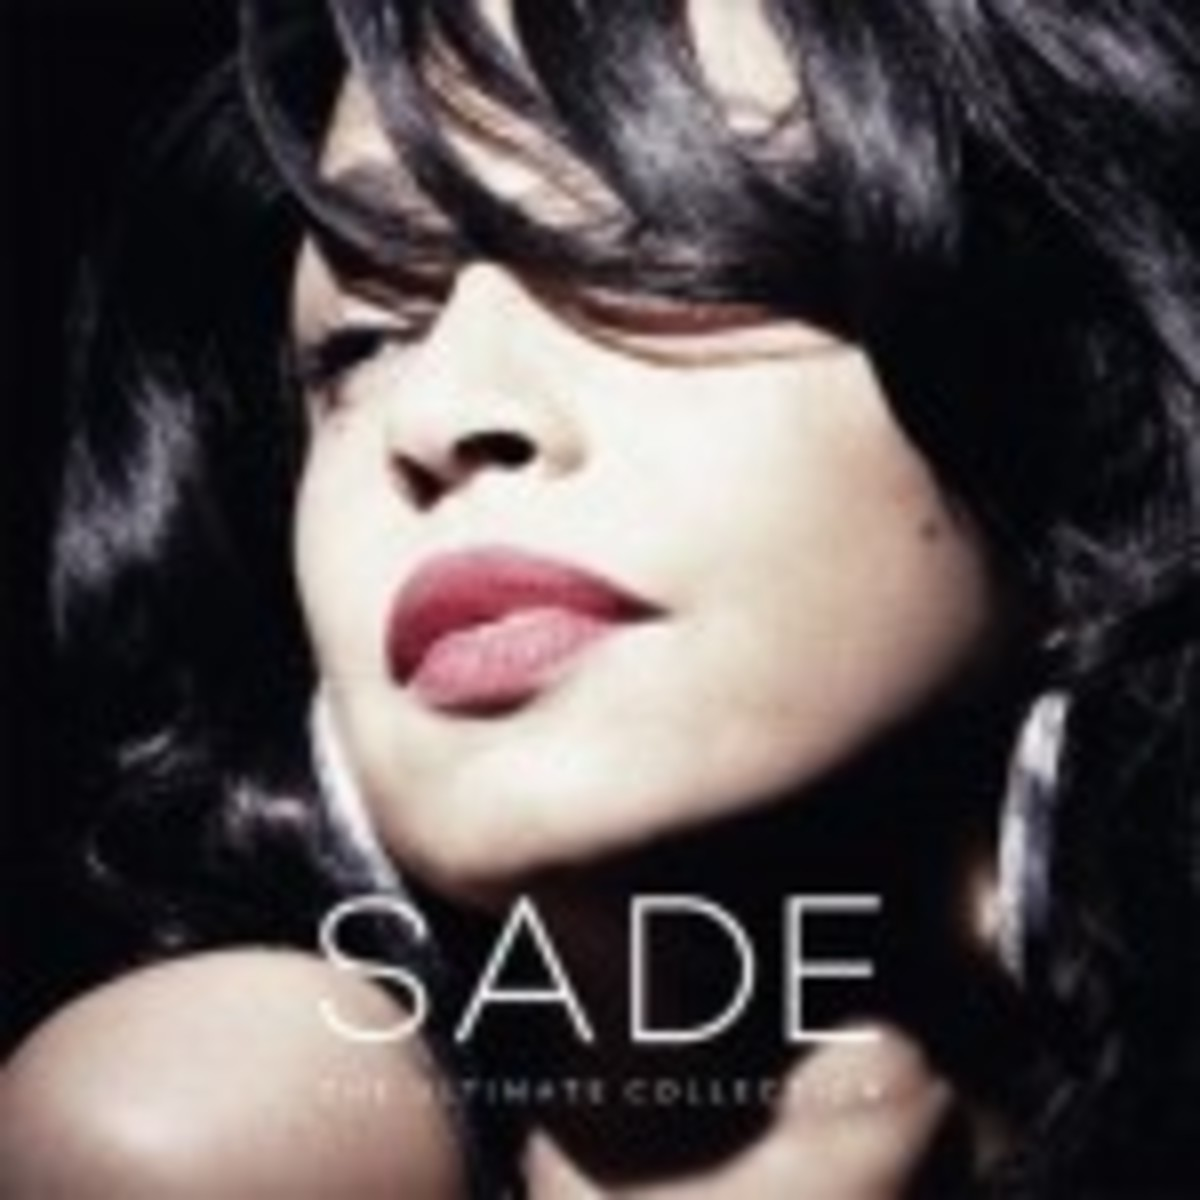 Sade_The Ultimate Collection